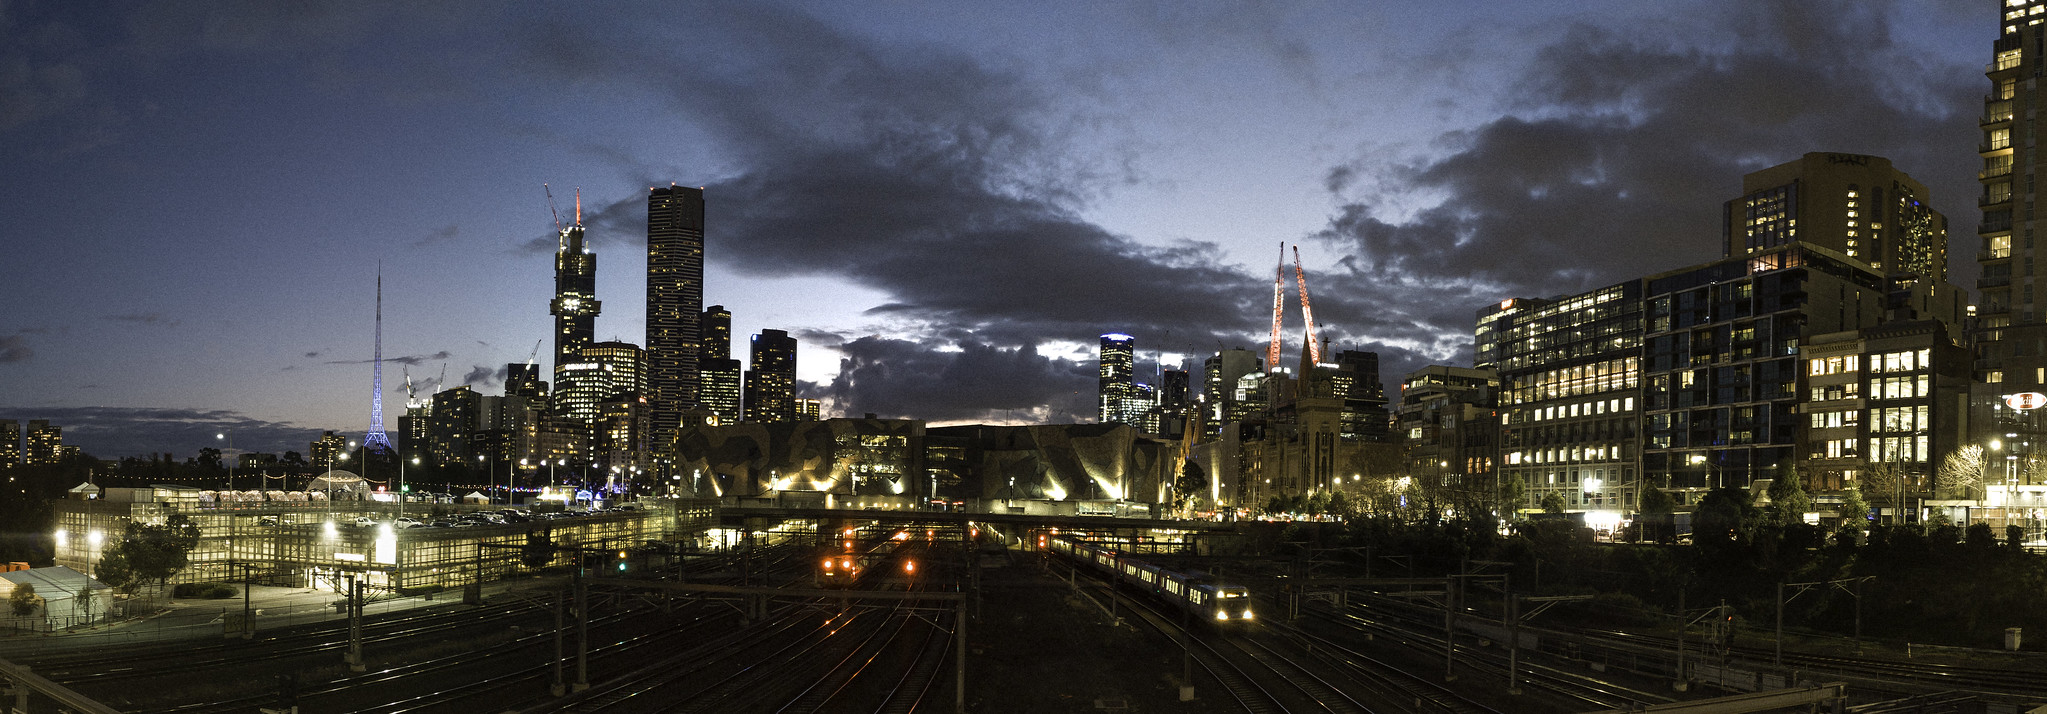 Fed Square from Batman Avenue